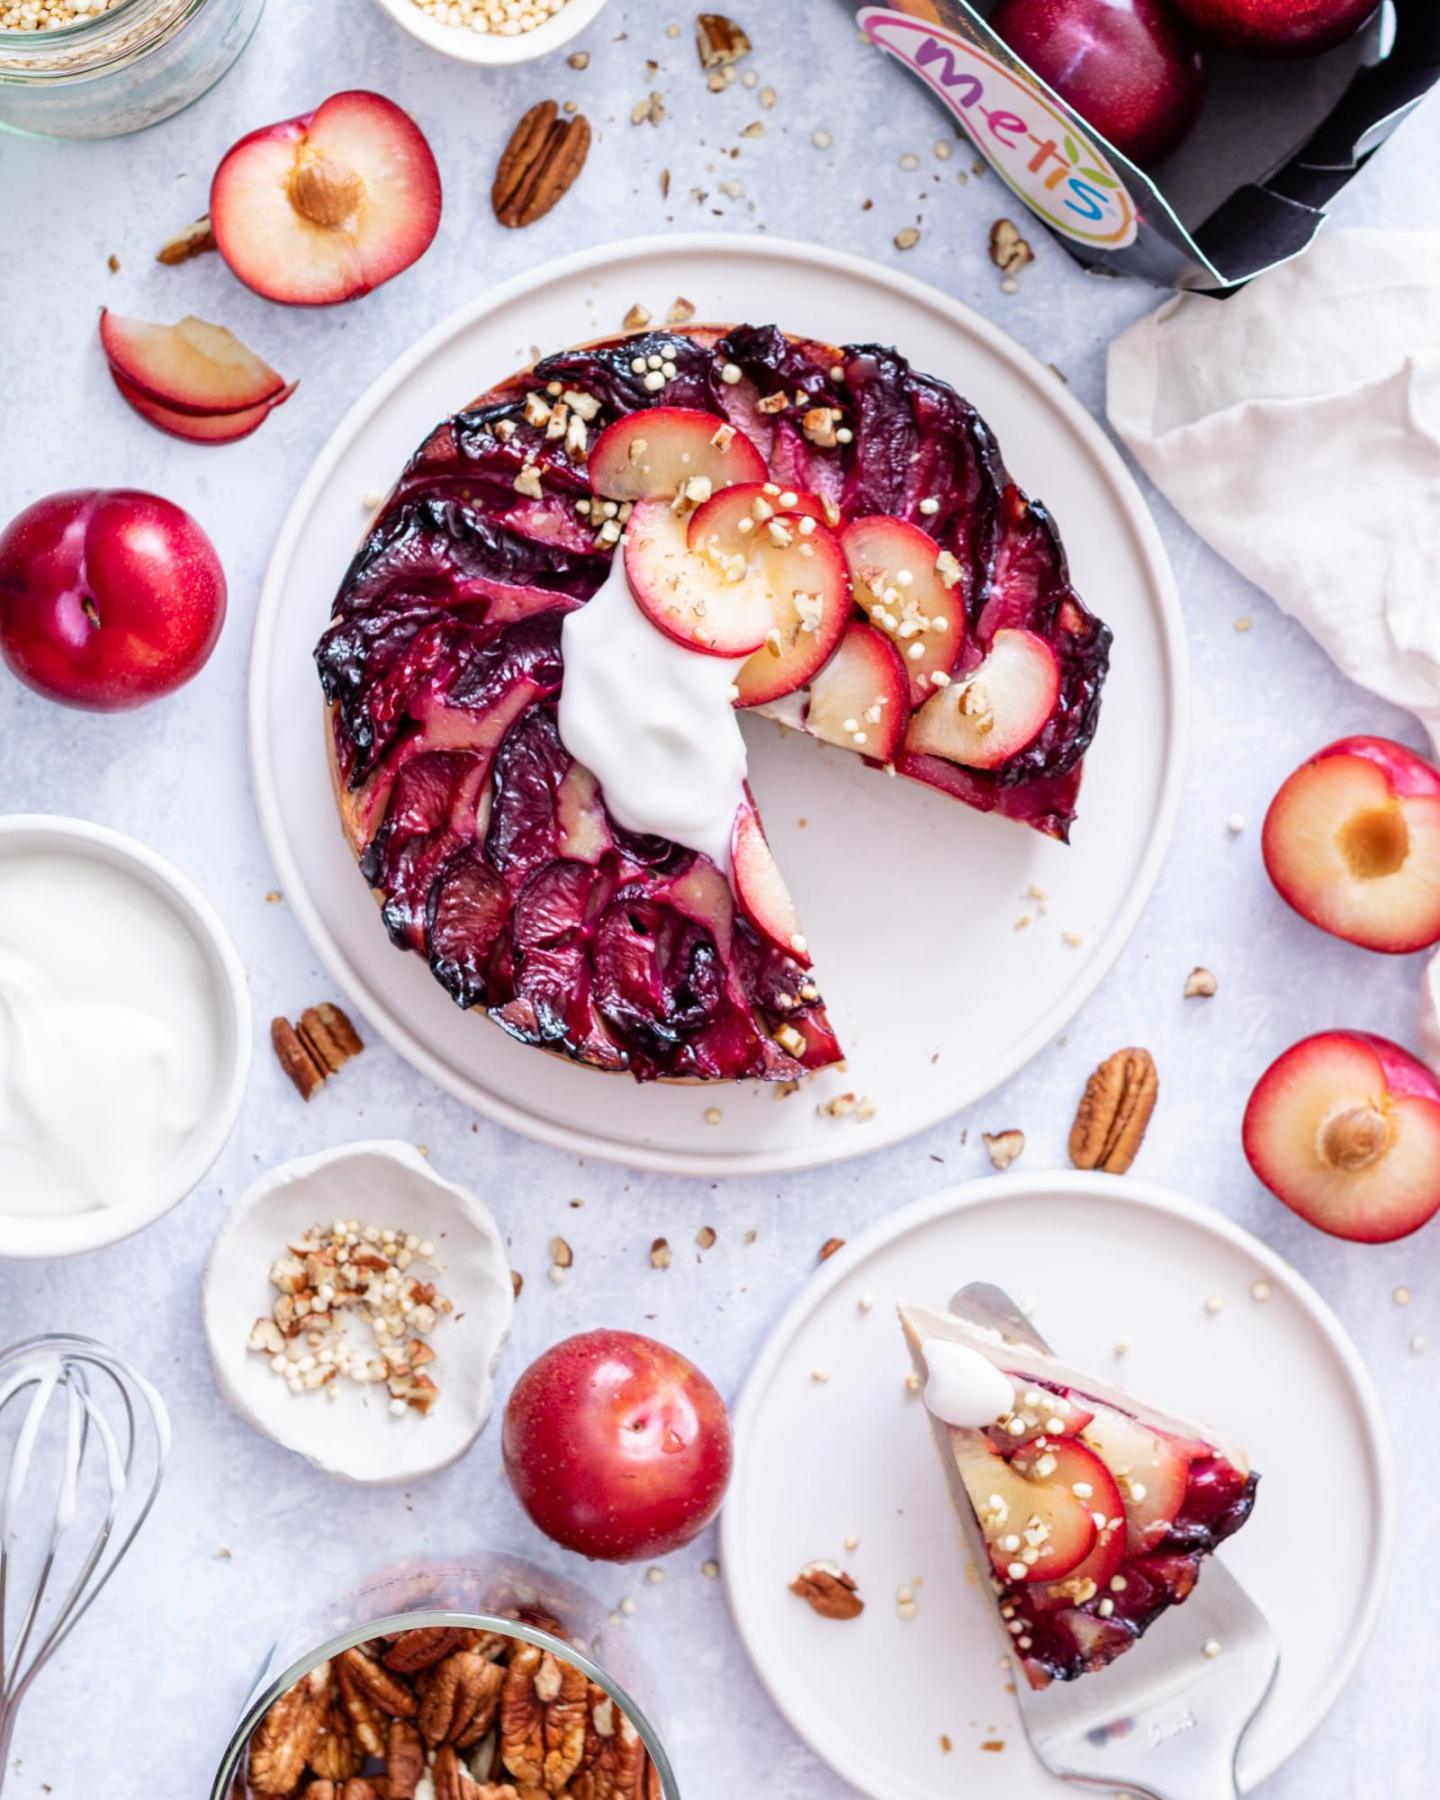 Vegan Upside Down Plum Cake